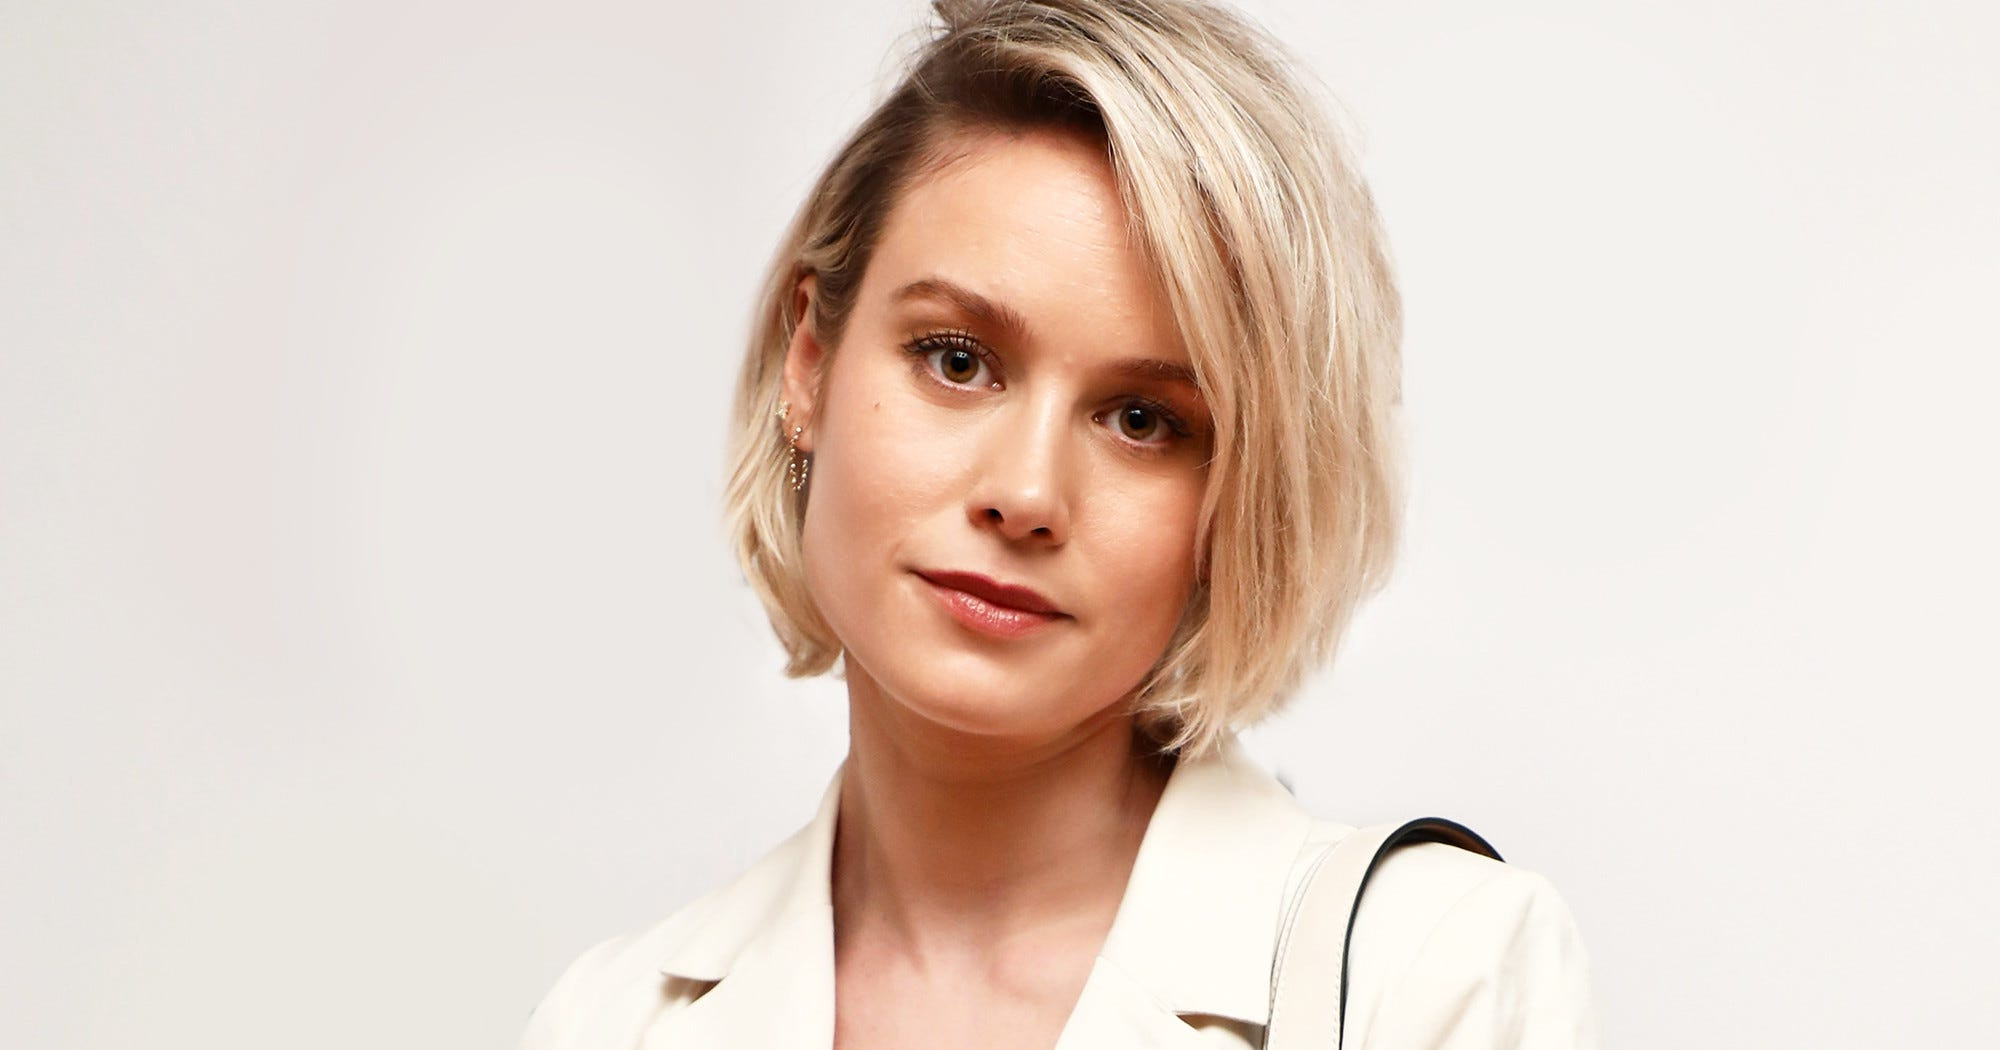 A Line Bob Haircut Looks For Chic Hairstyles In 2019 Throughout Straight Wispy Jaw Length Bob Hairstyles (View 16 of 20)